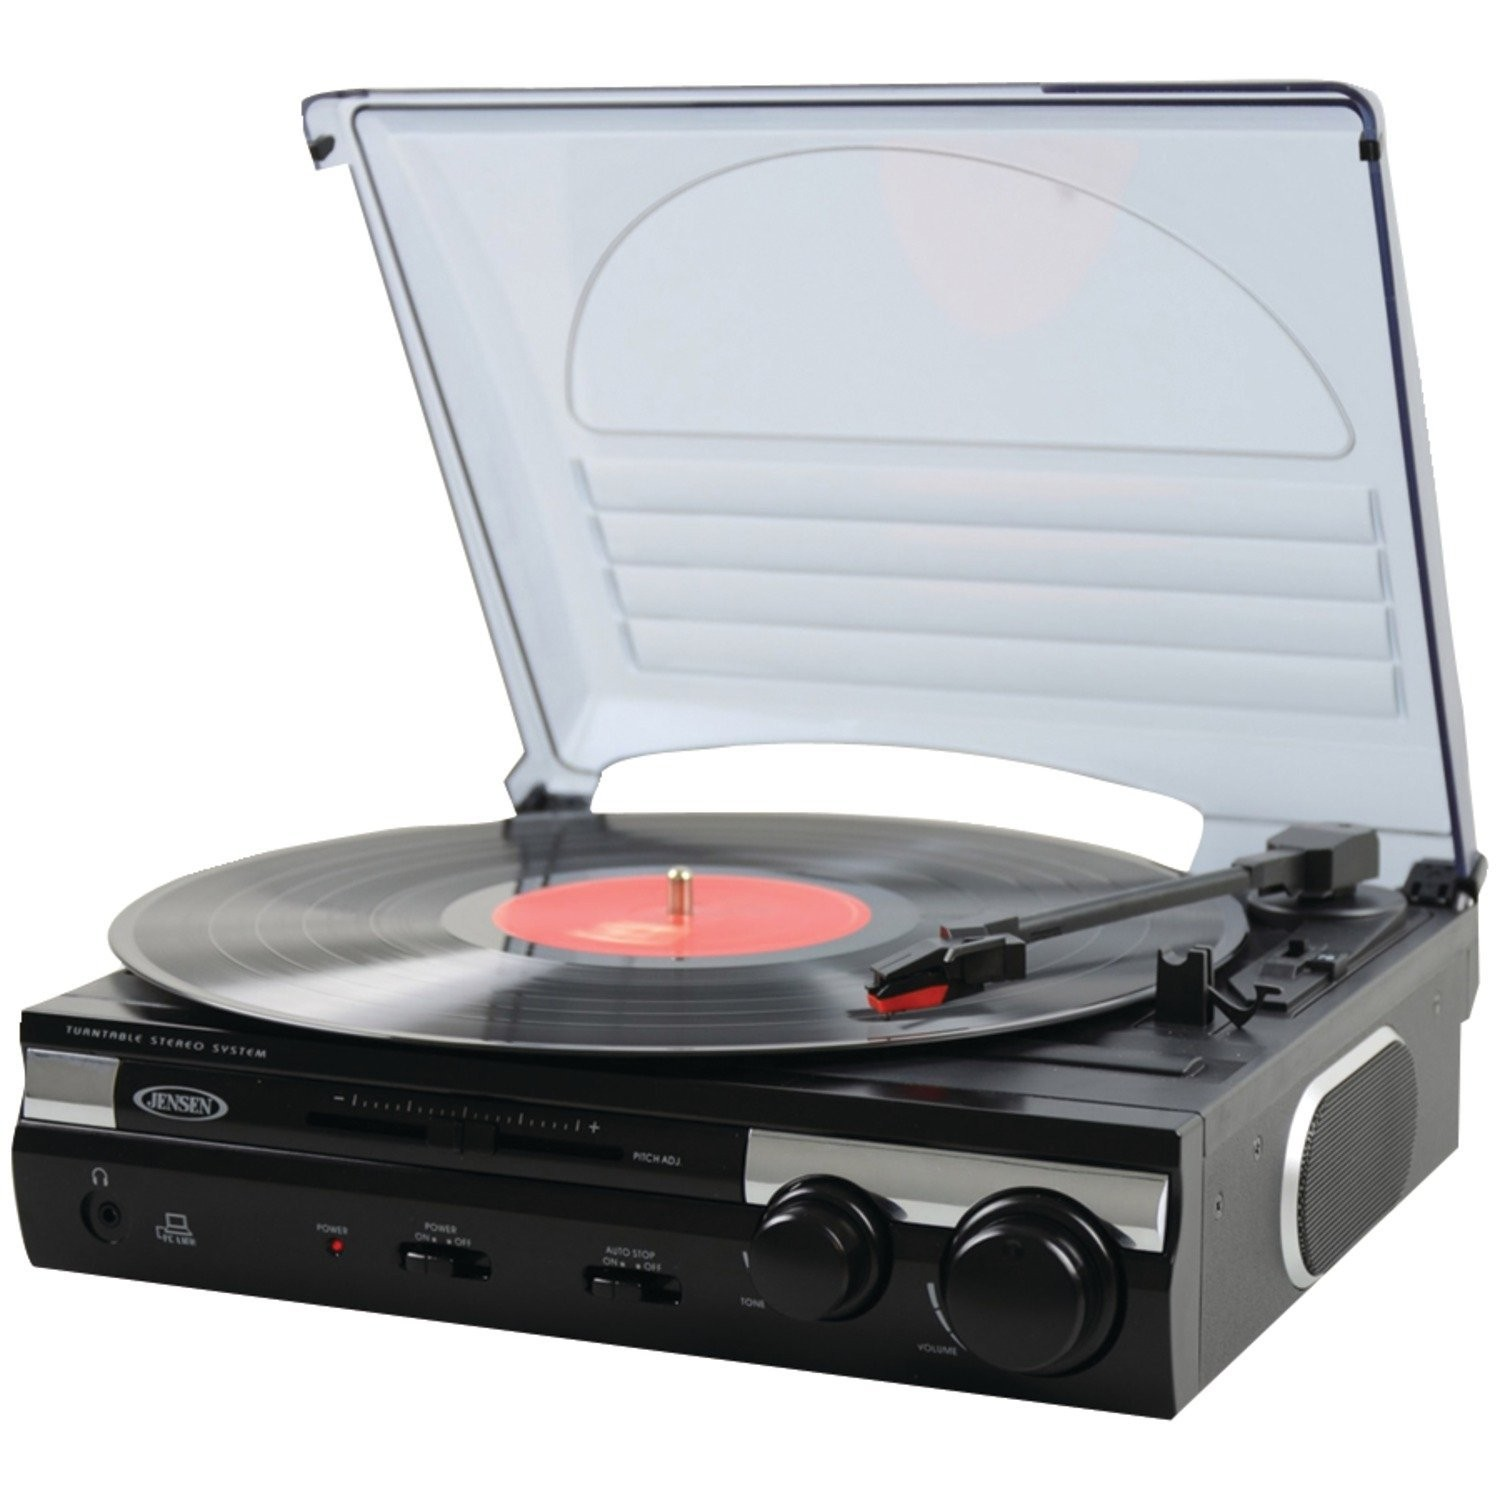 Jensen JTA-230 3-Speed Turntable with Speakers